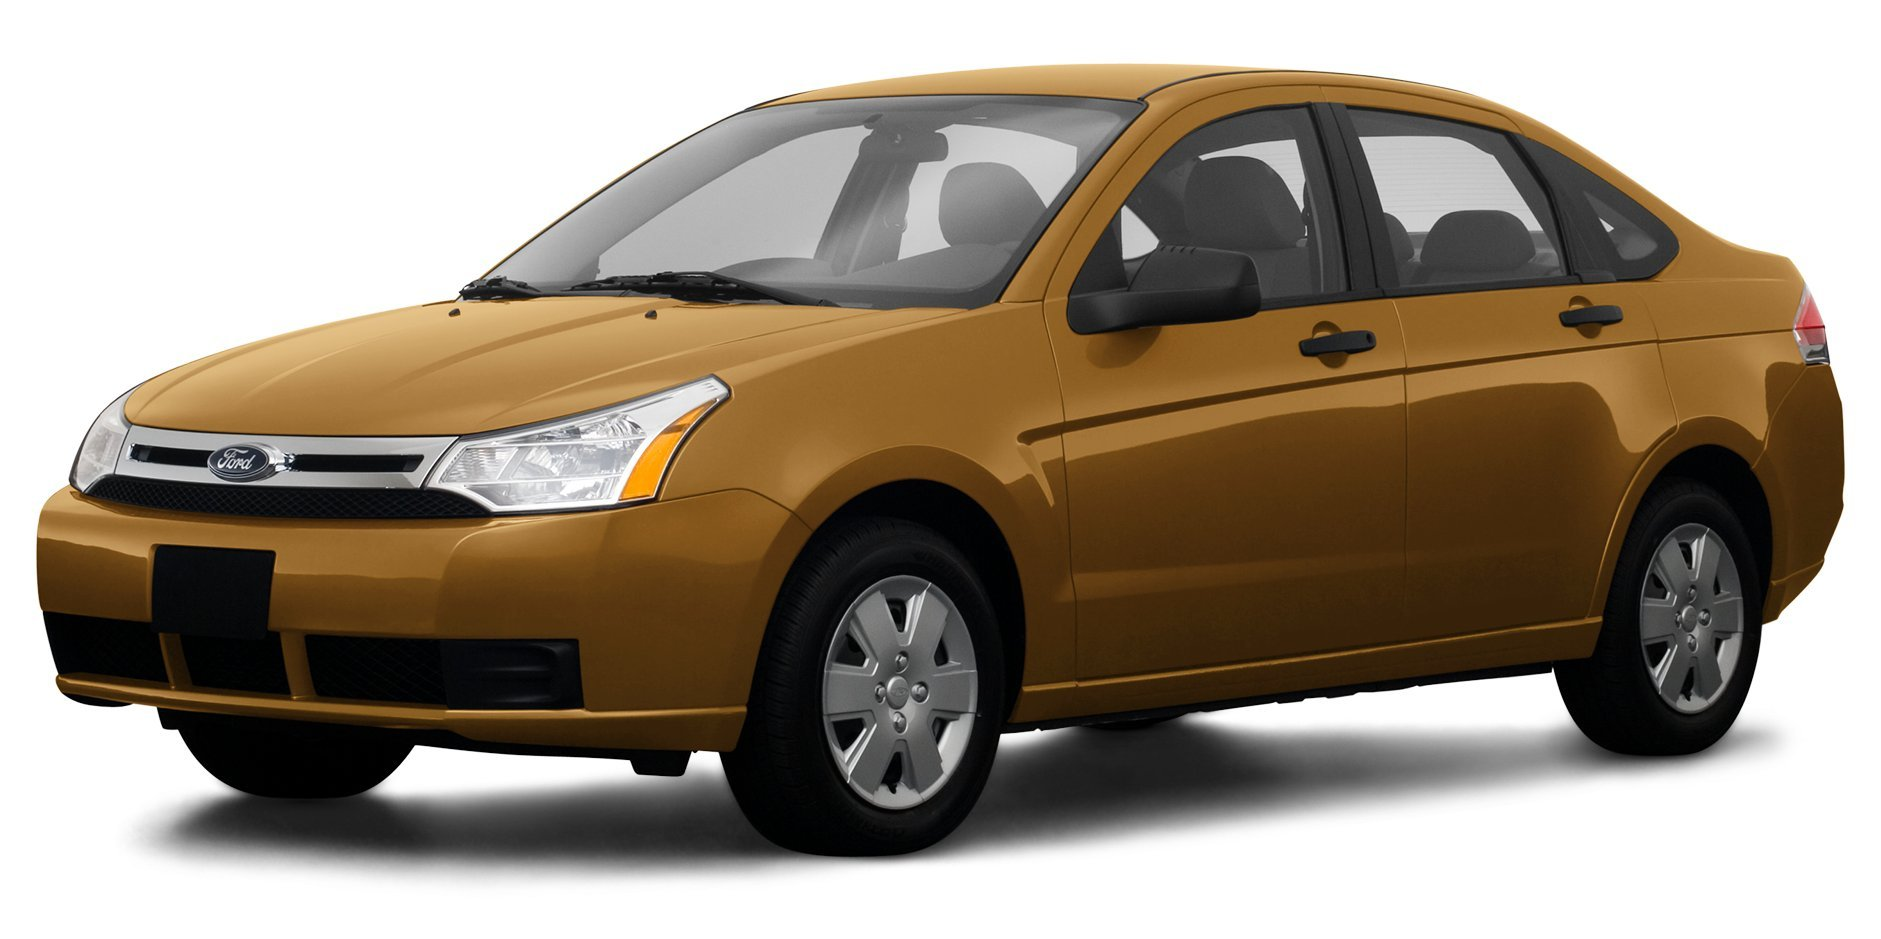 2009 ford focus reviews images and specs vehicles. Black Bedroom Furniture Sets. Home Design Ideas